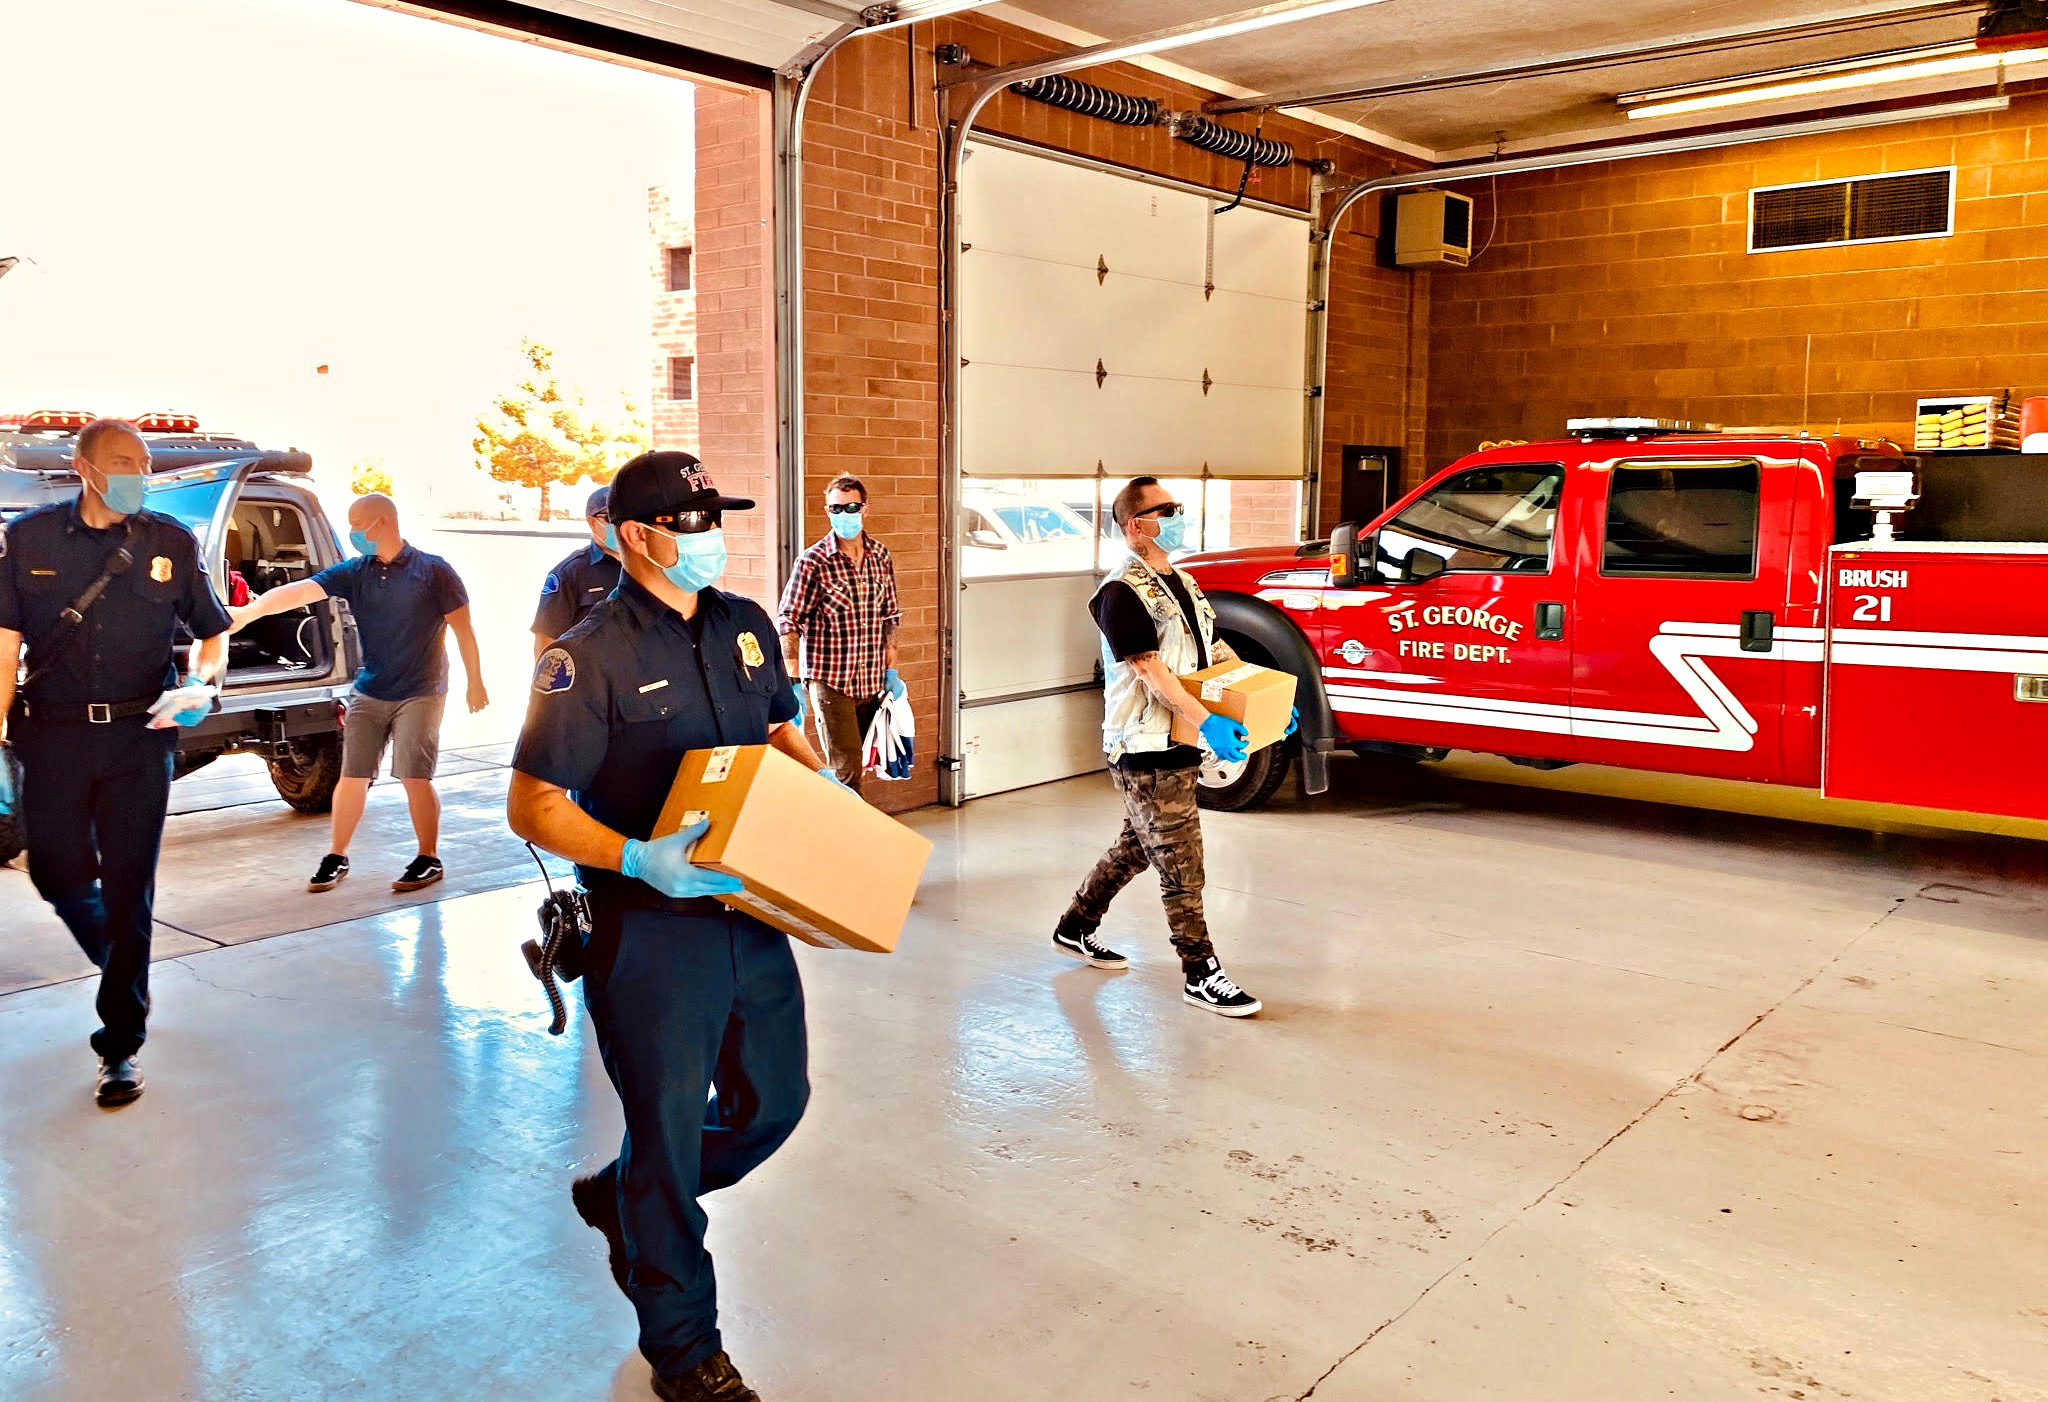 Steineckert delivers PPE kits to the St. George Fire Department.